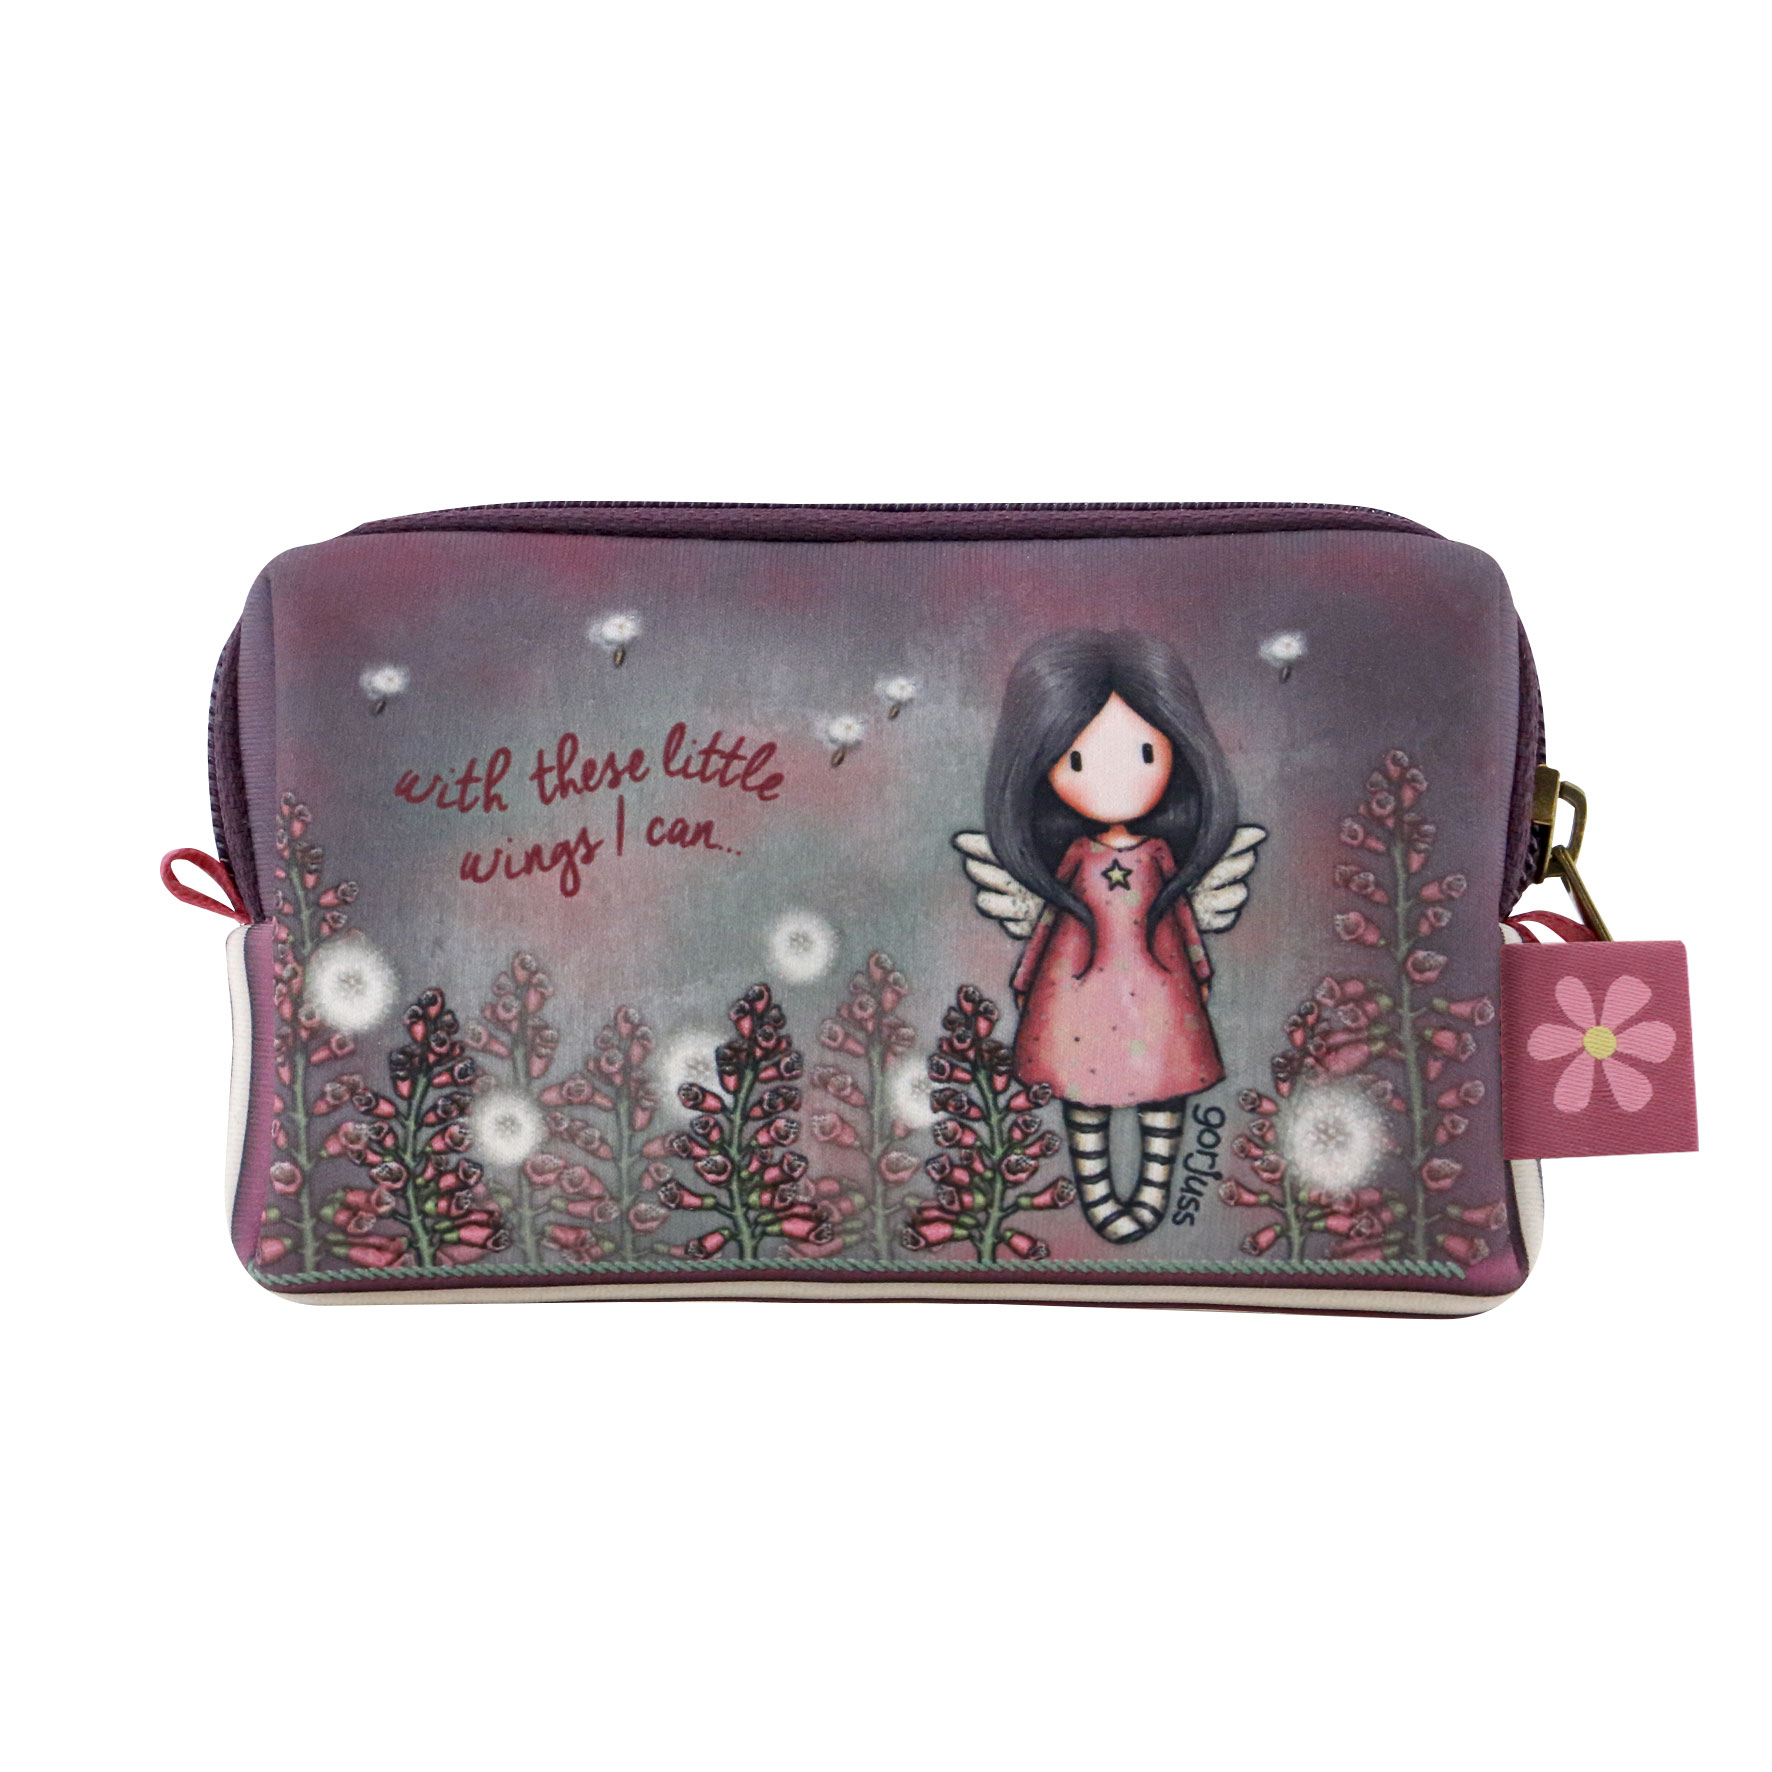 Santoro majhne neopren etui Gorjuss Little Wings